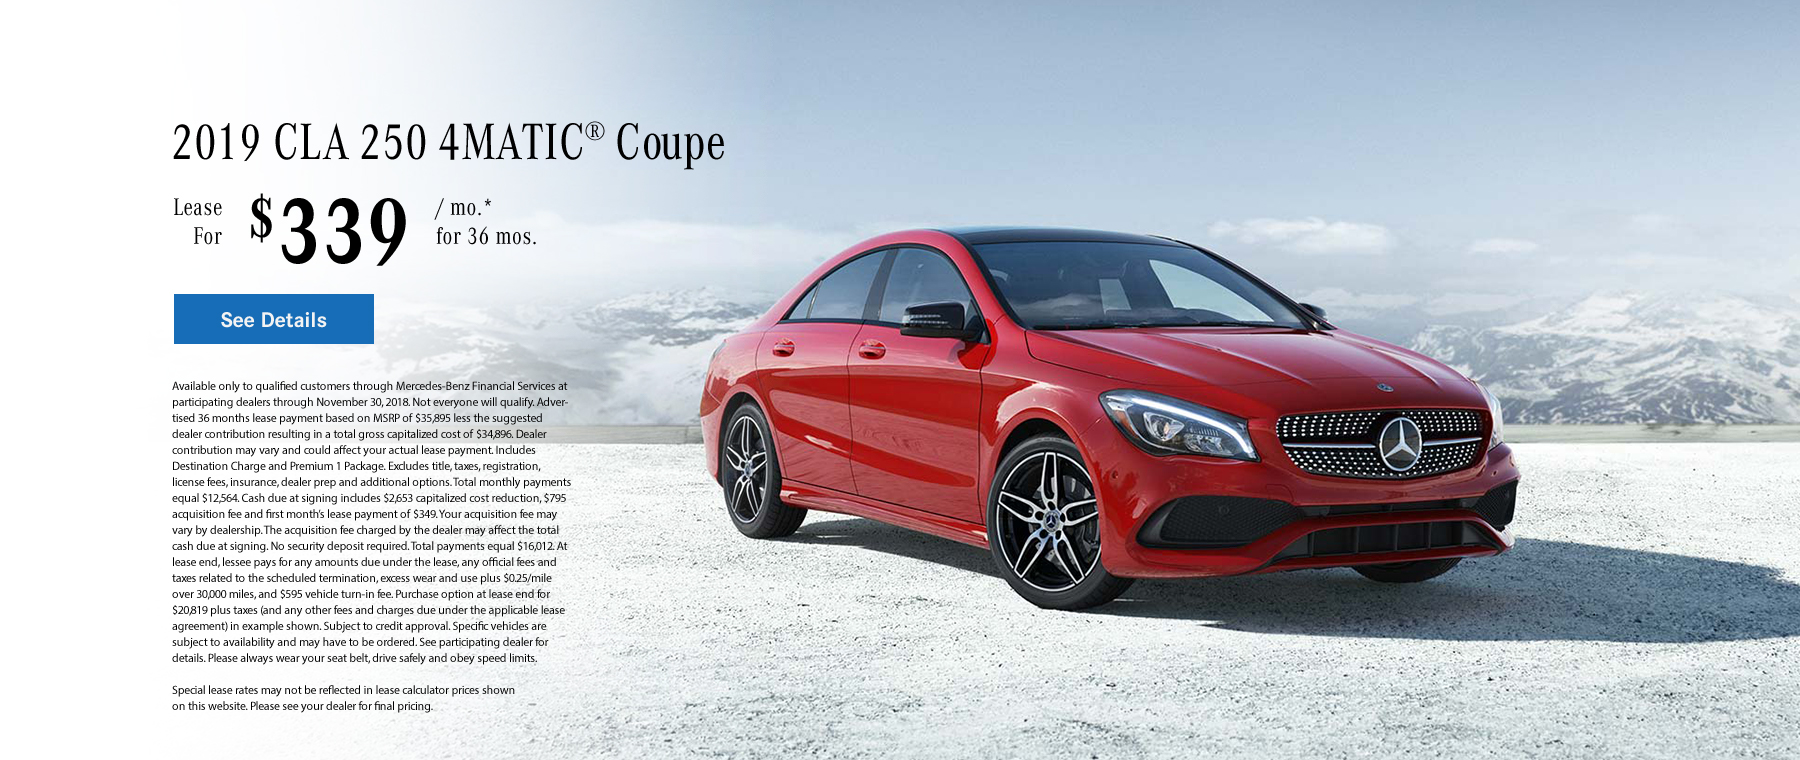 CLA 250 Special